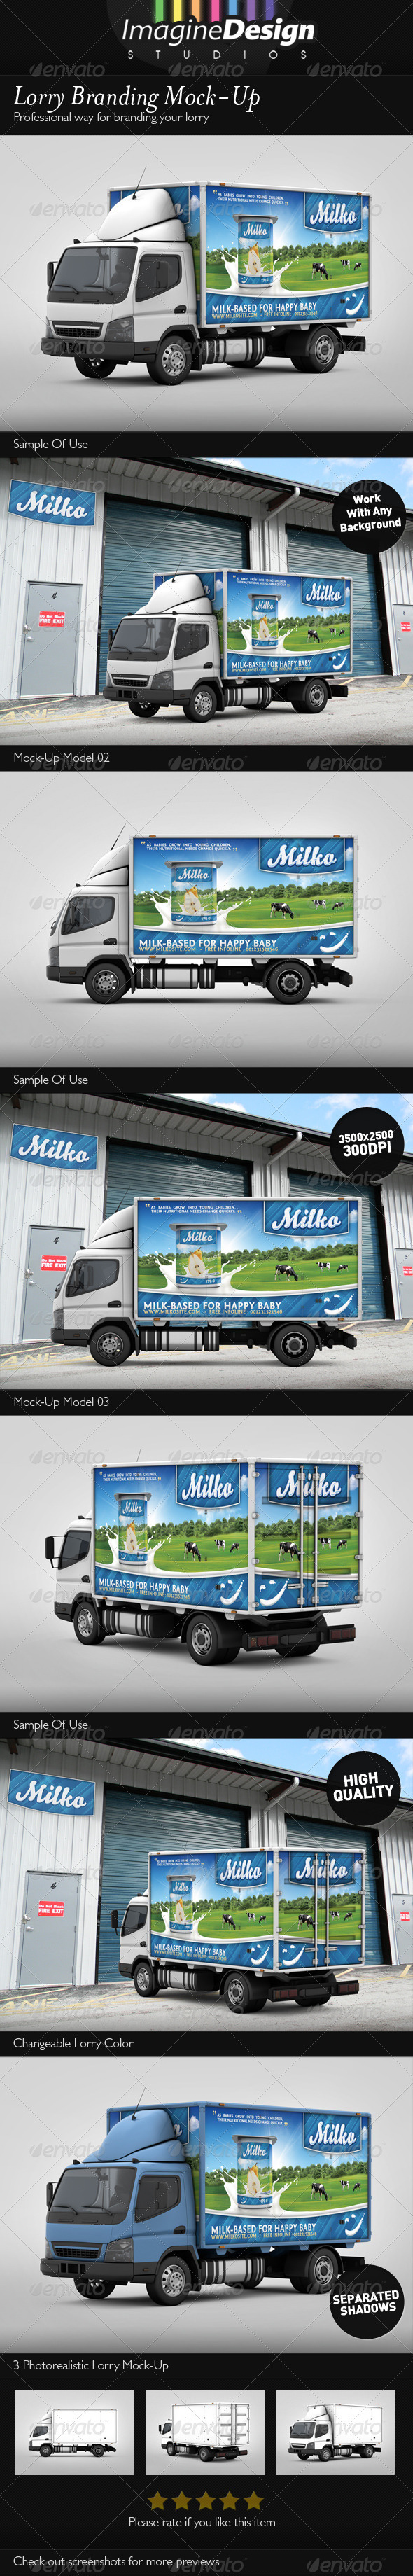 Lorry Branding Mock-Up - Vehicle Wraps Print